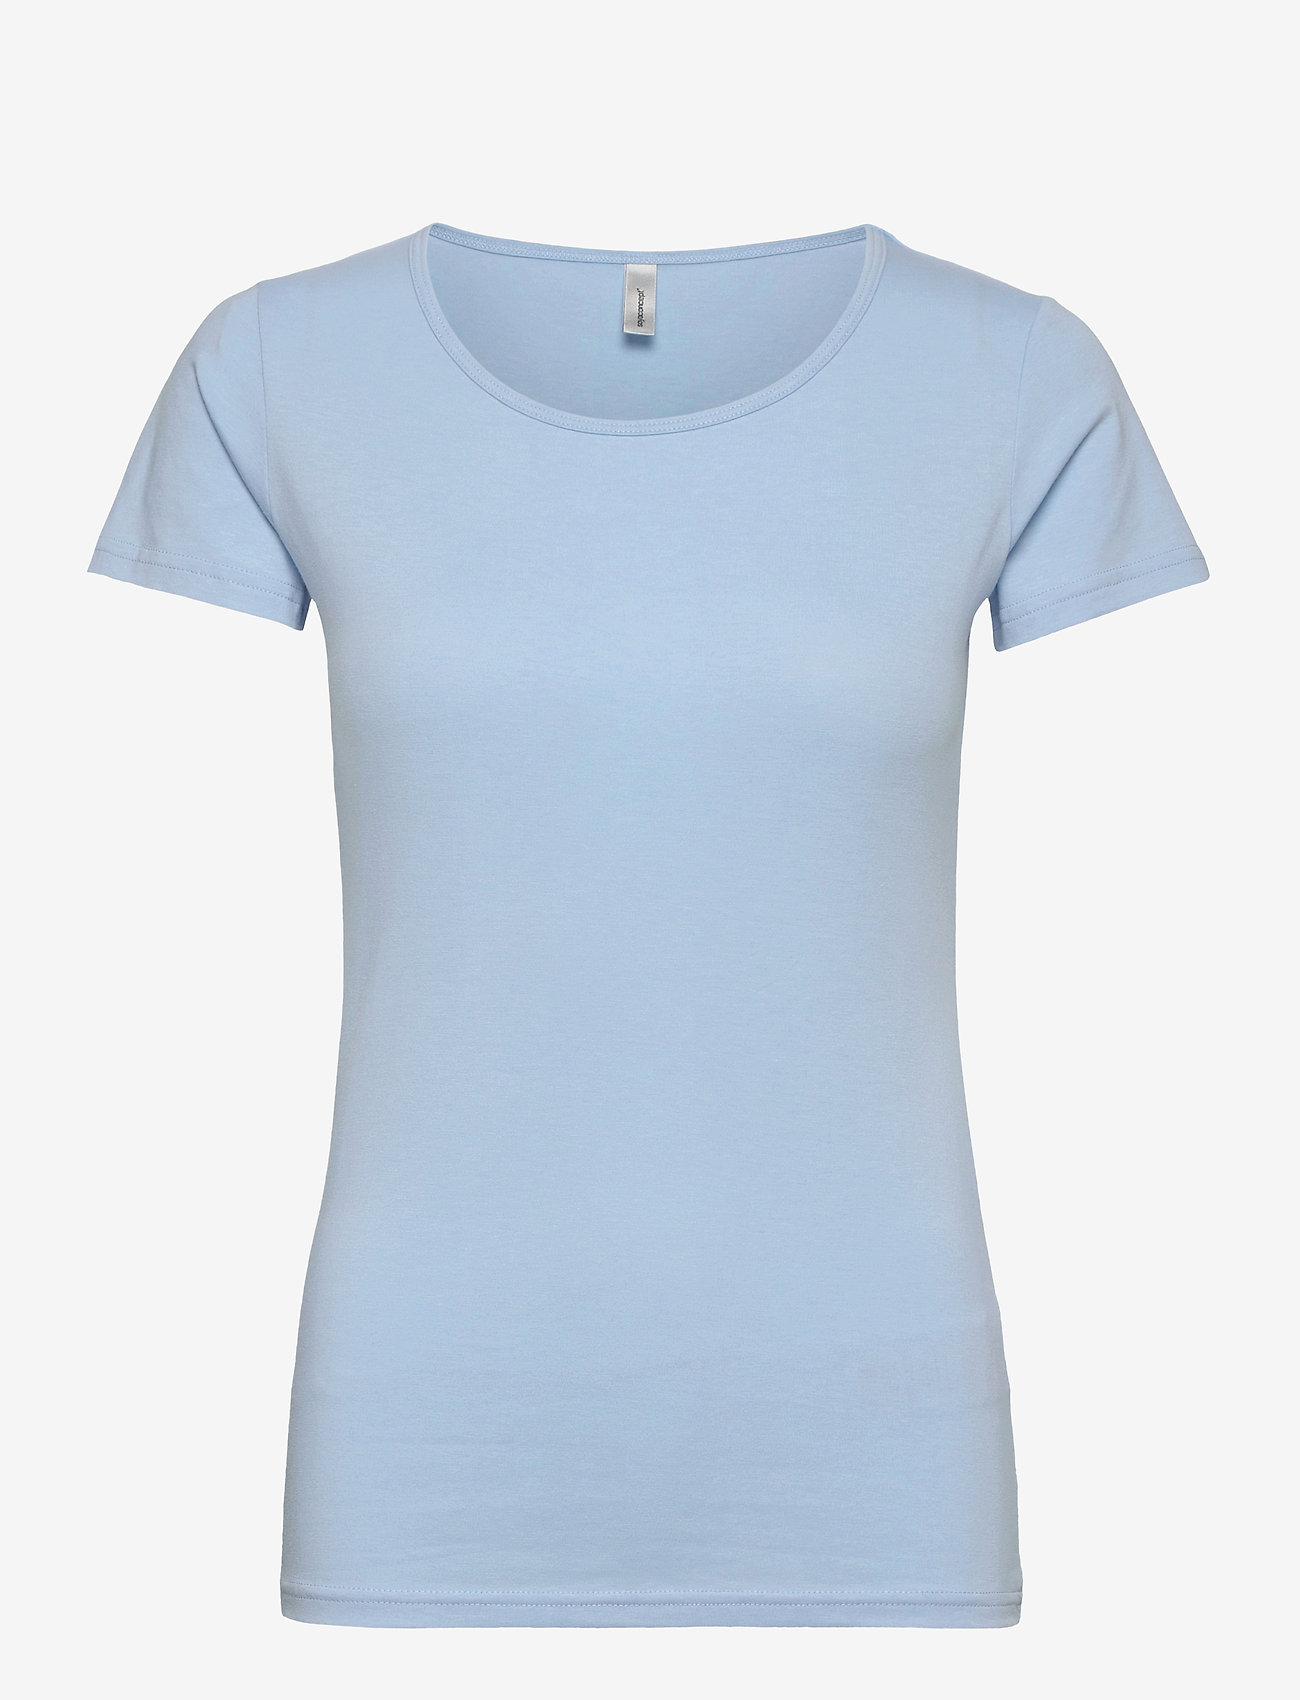 Soyaconcept - SC-PYLLE - t-shirt & tops - powder blue - 0